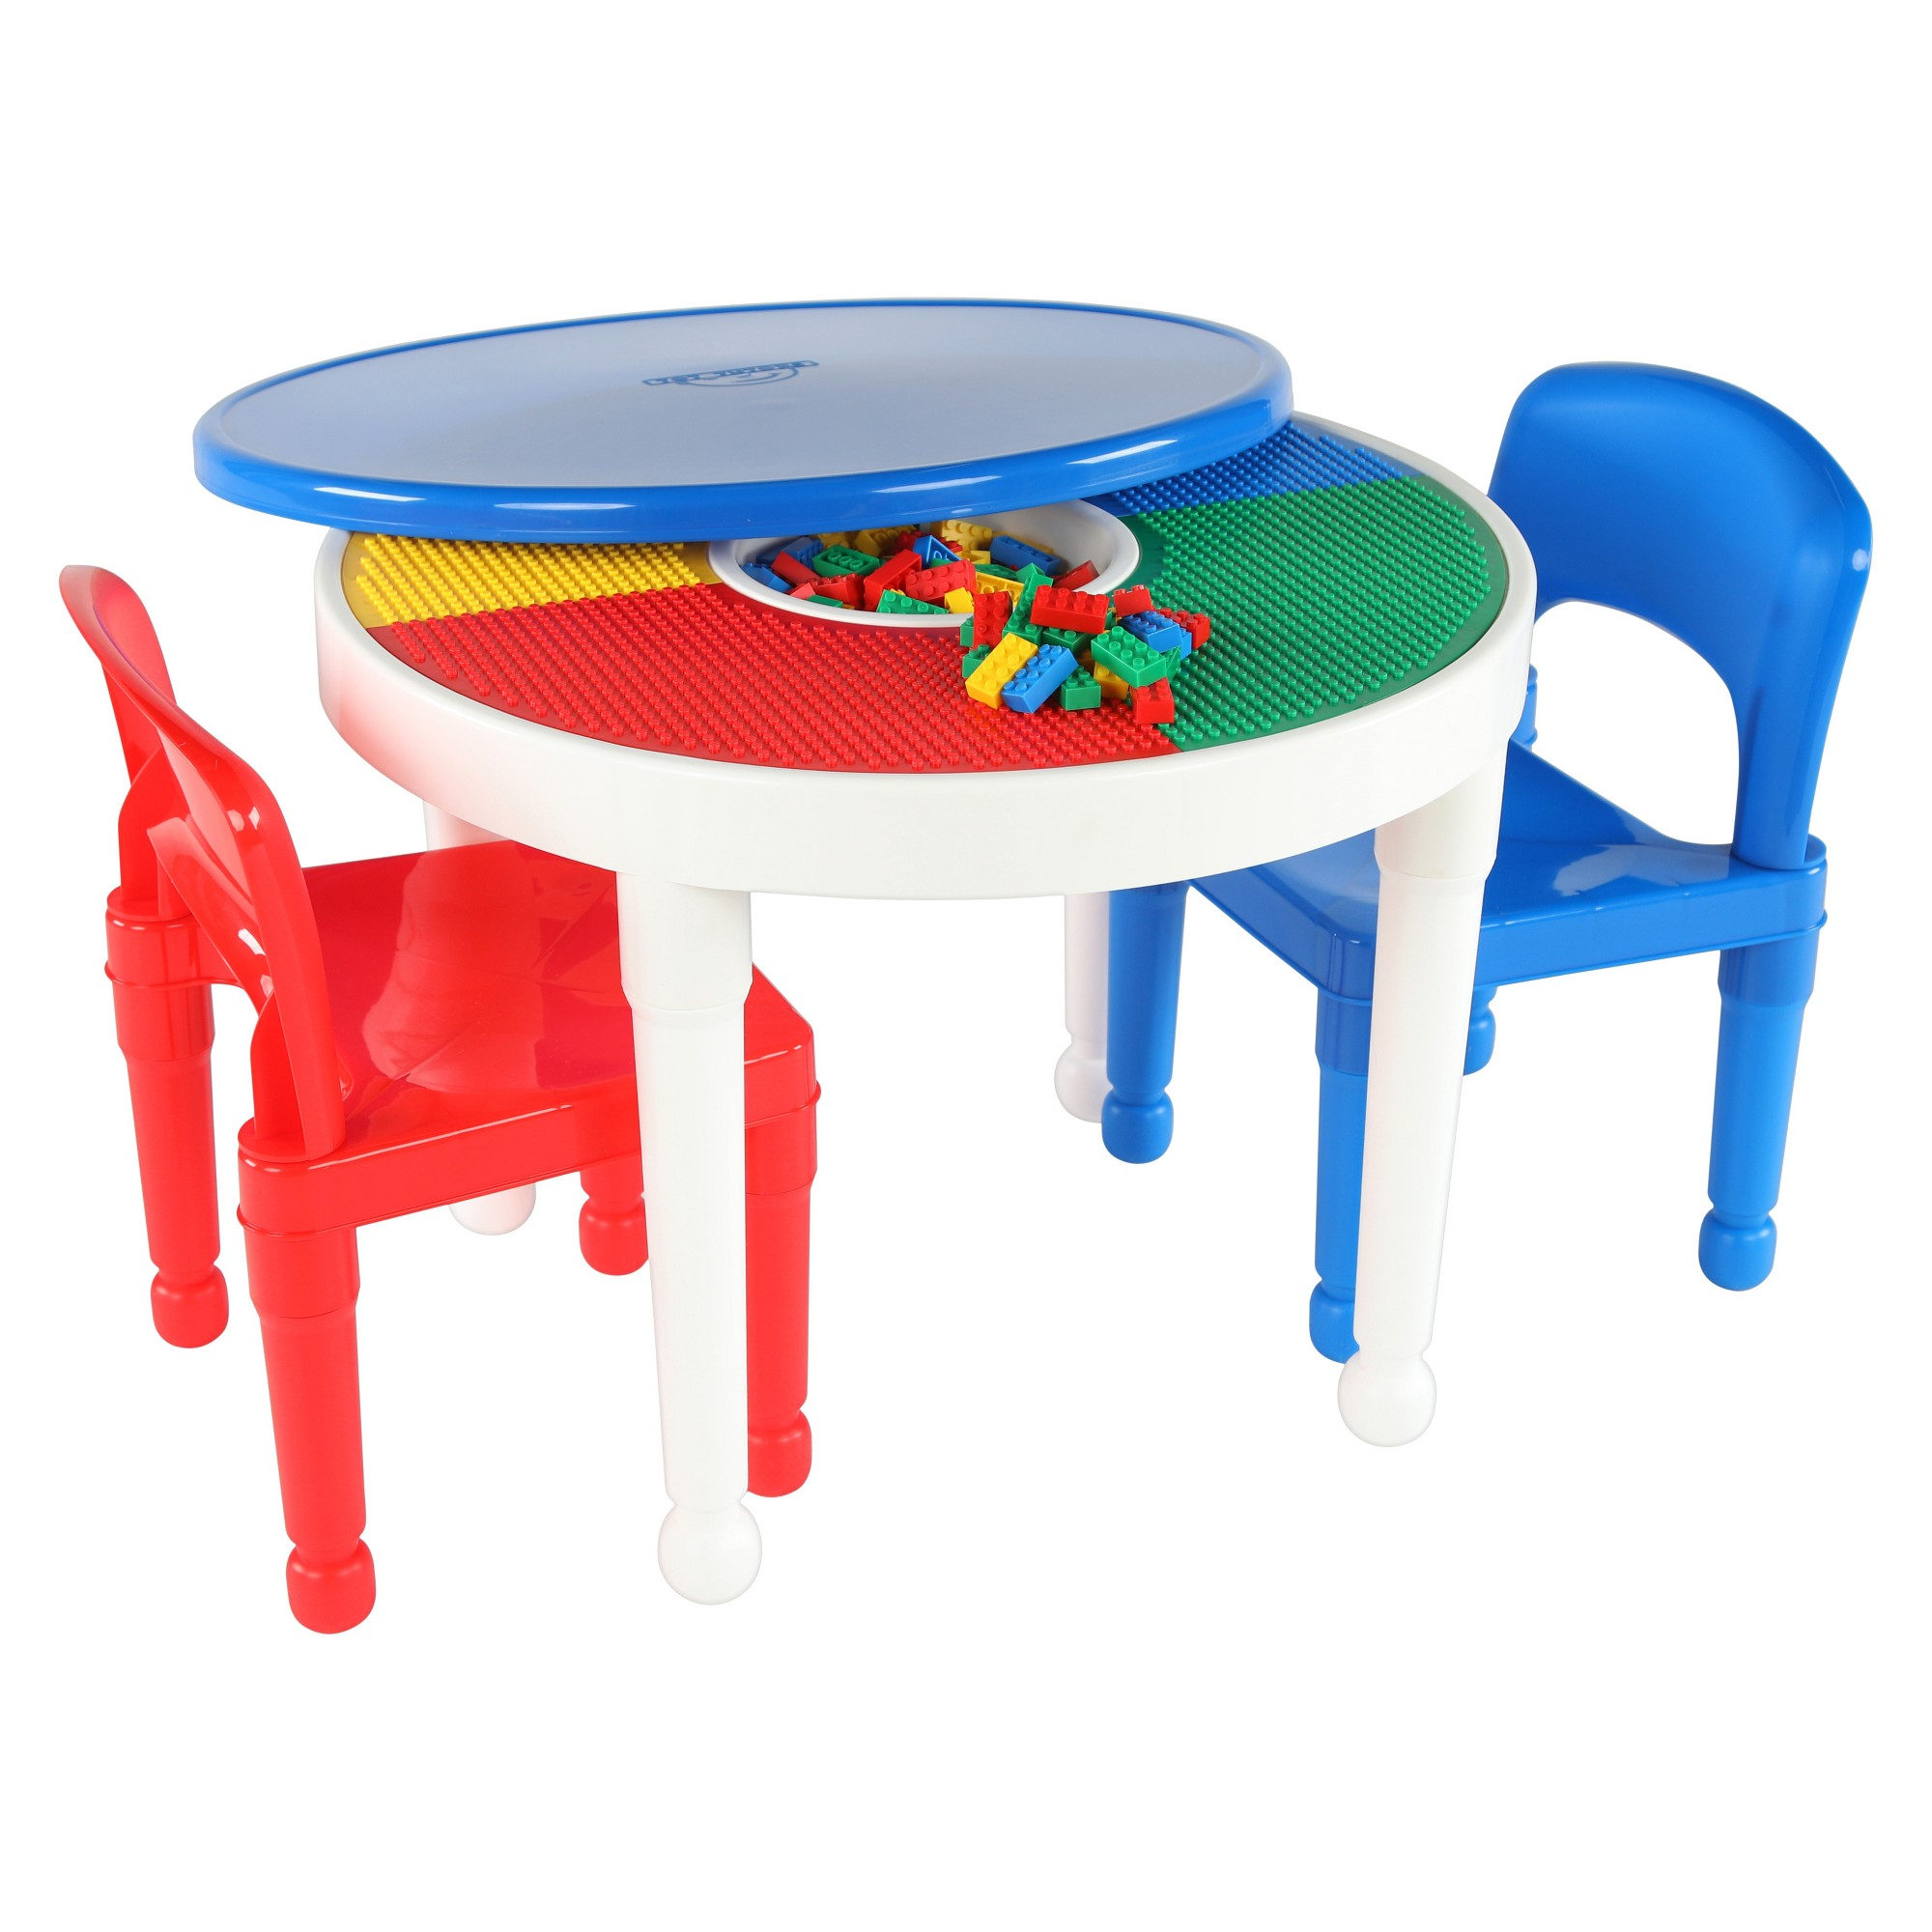 Round Plastic Construction Table With 2 Chairs Amp Cover